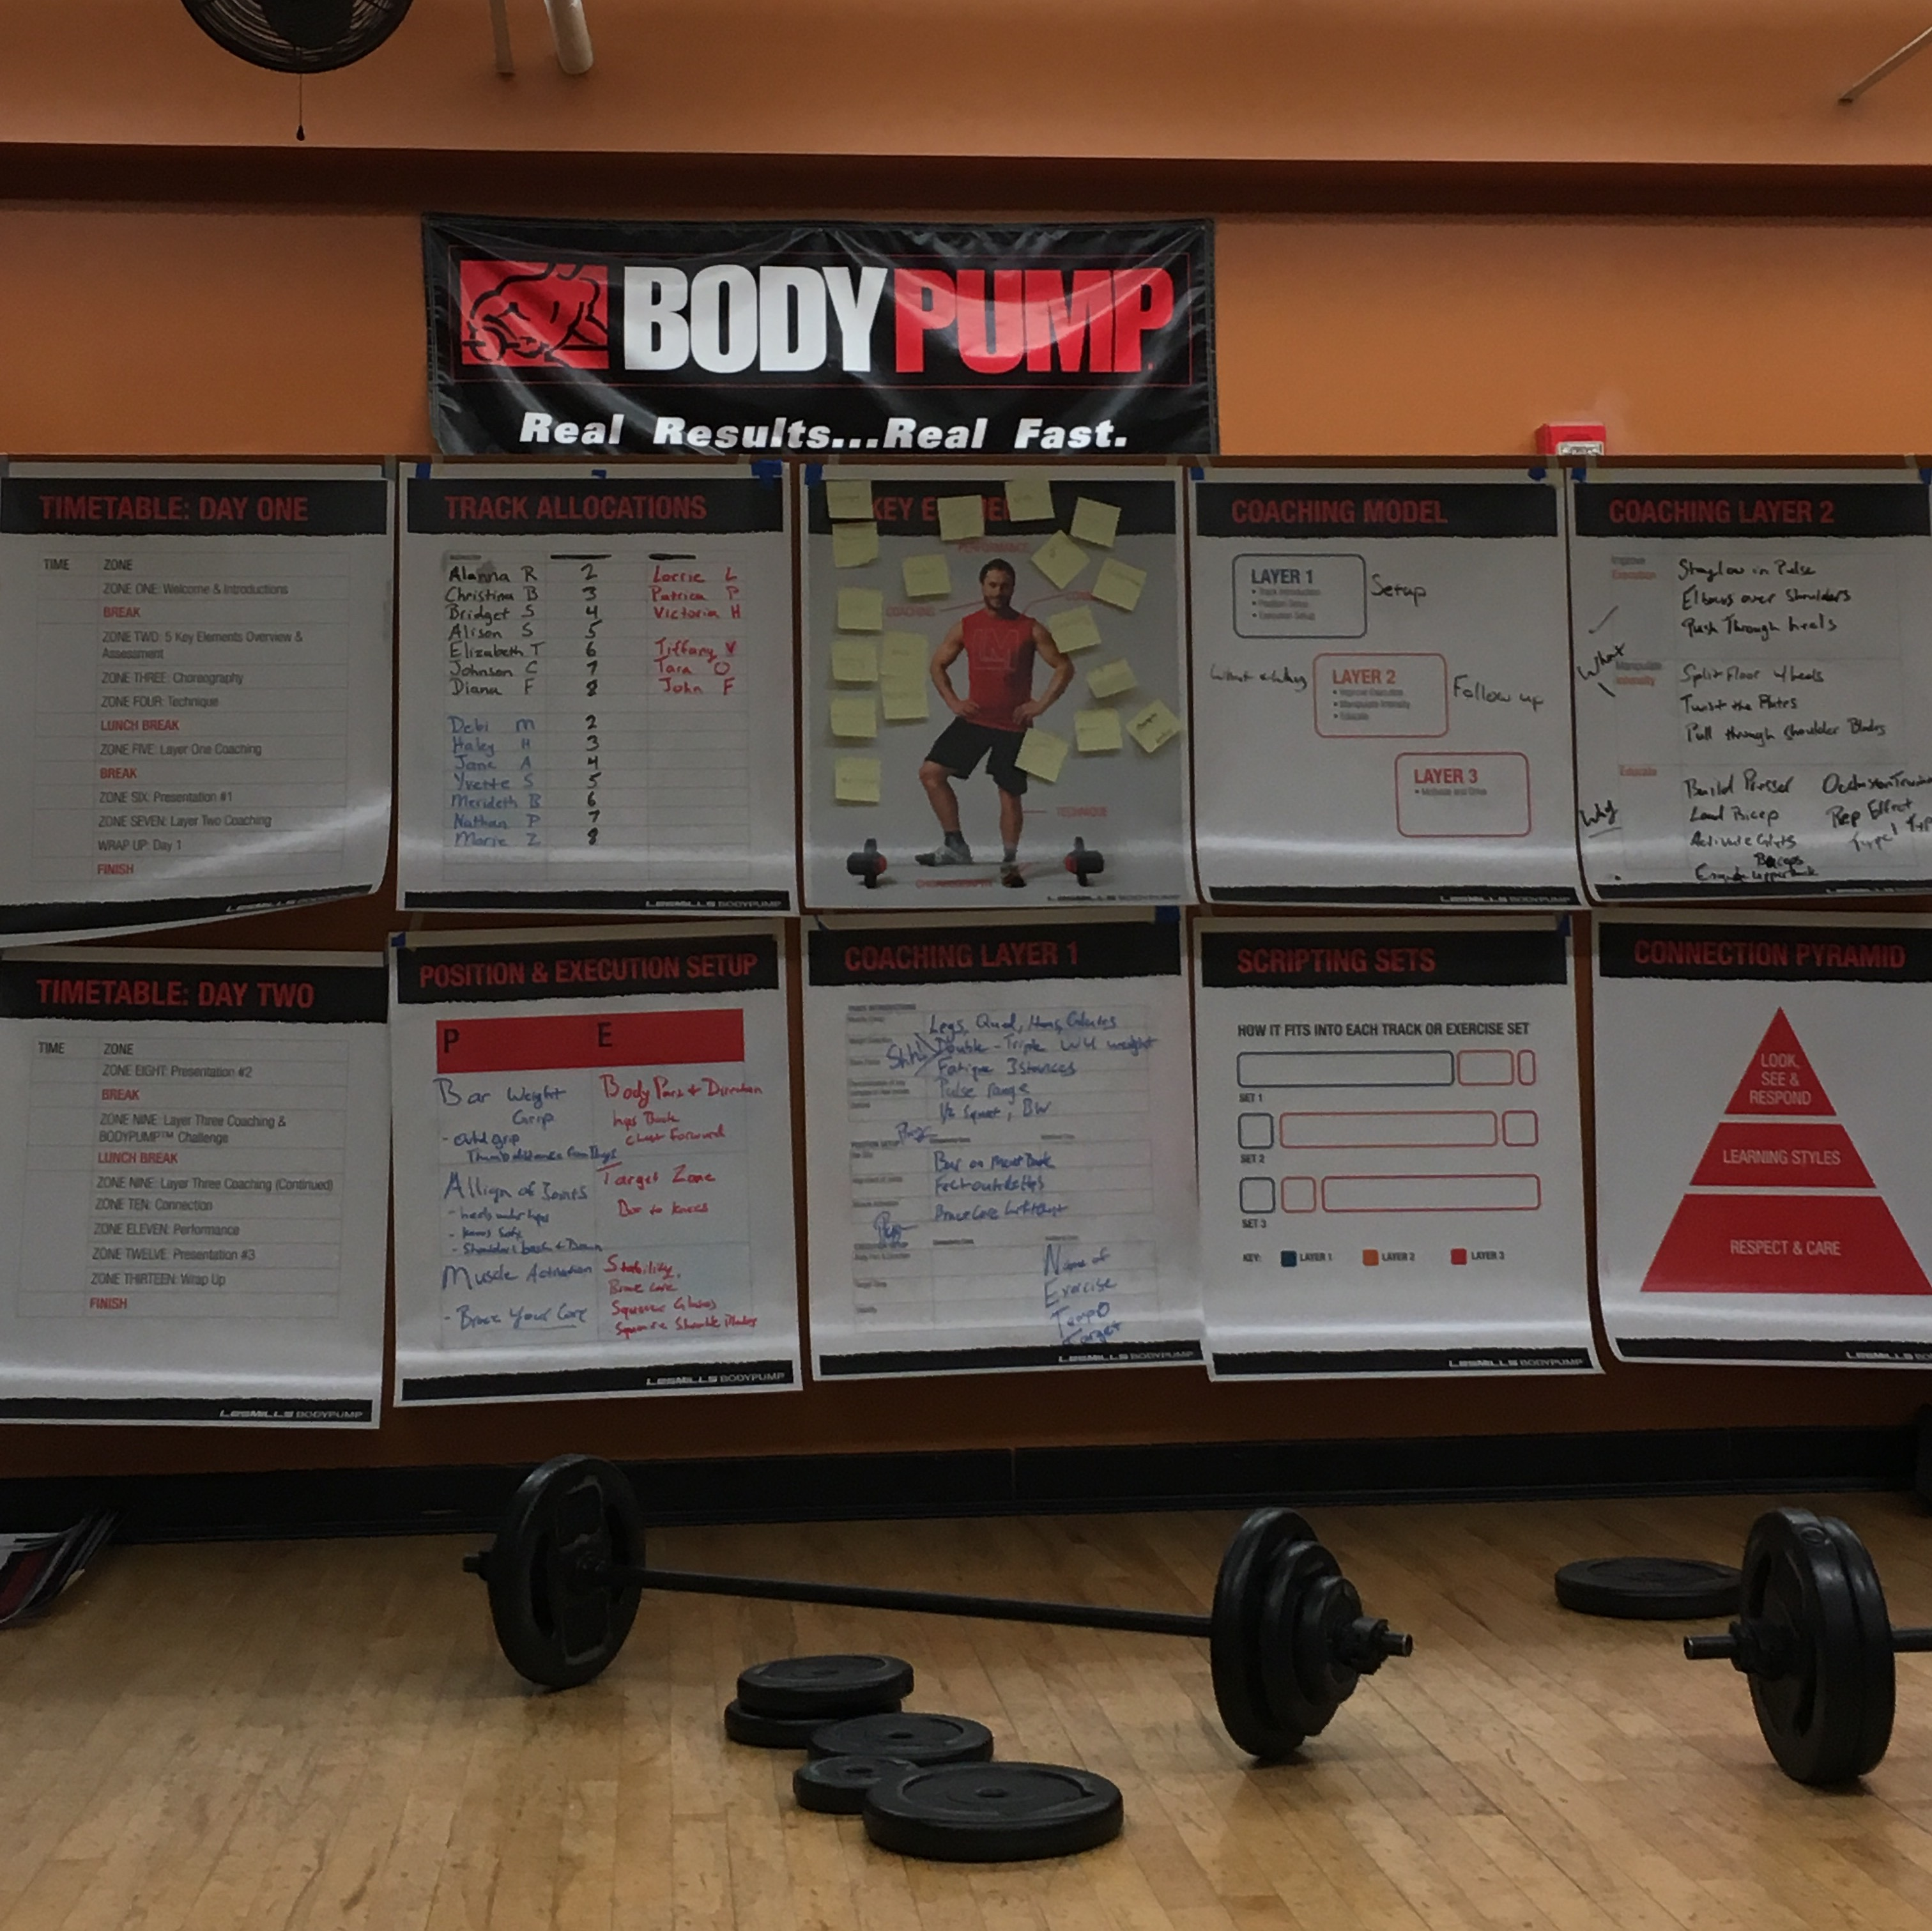 Les Mills Bodypump Inital Instructor Training Experience